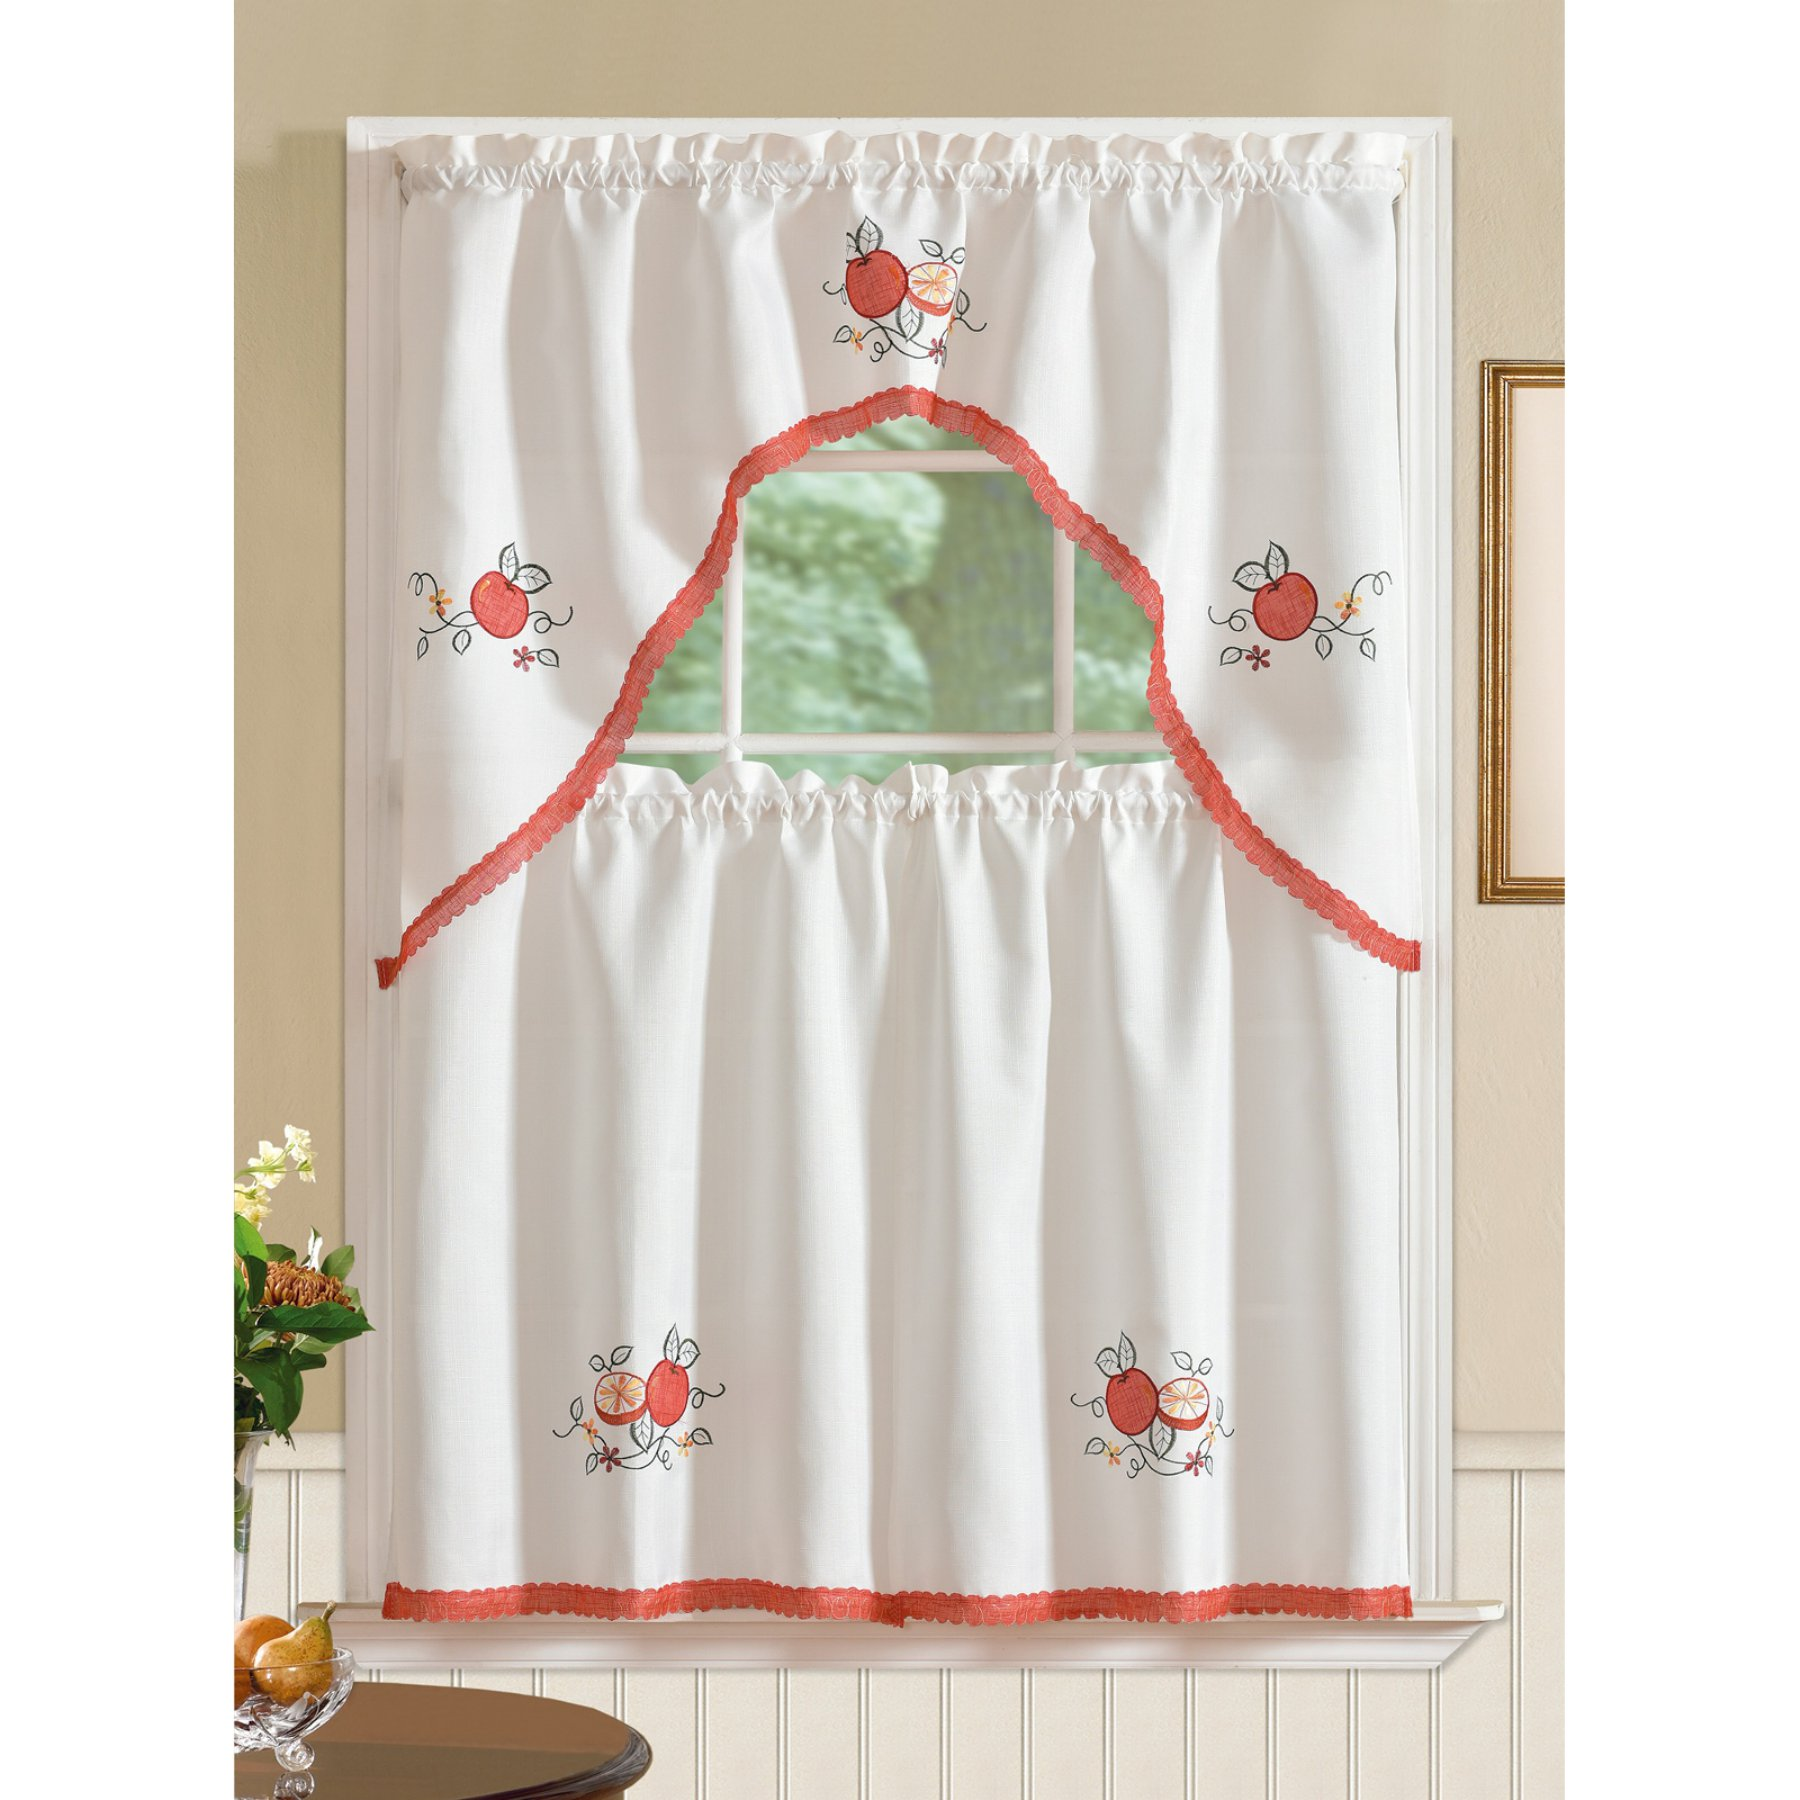 Kitchen nook window treatments  rt designers collection regal embroidered apple kitchen curtain tier